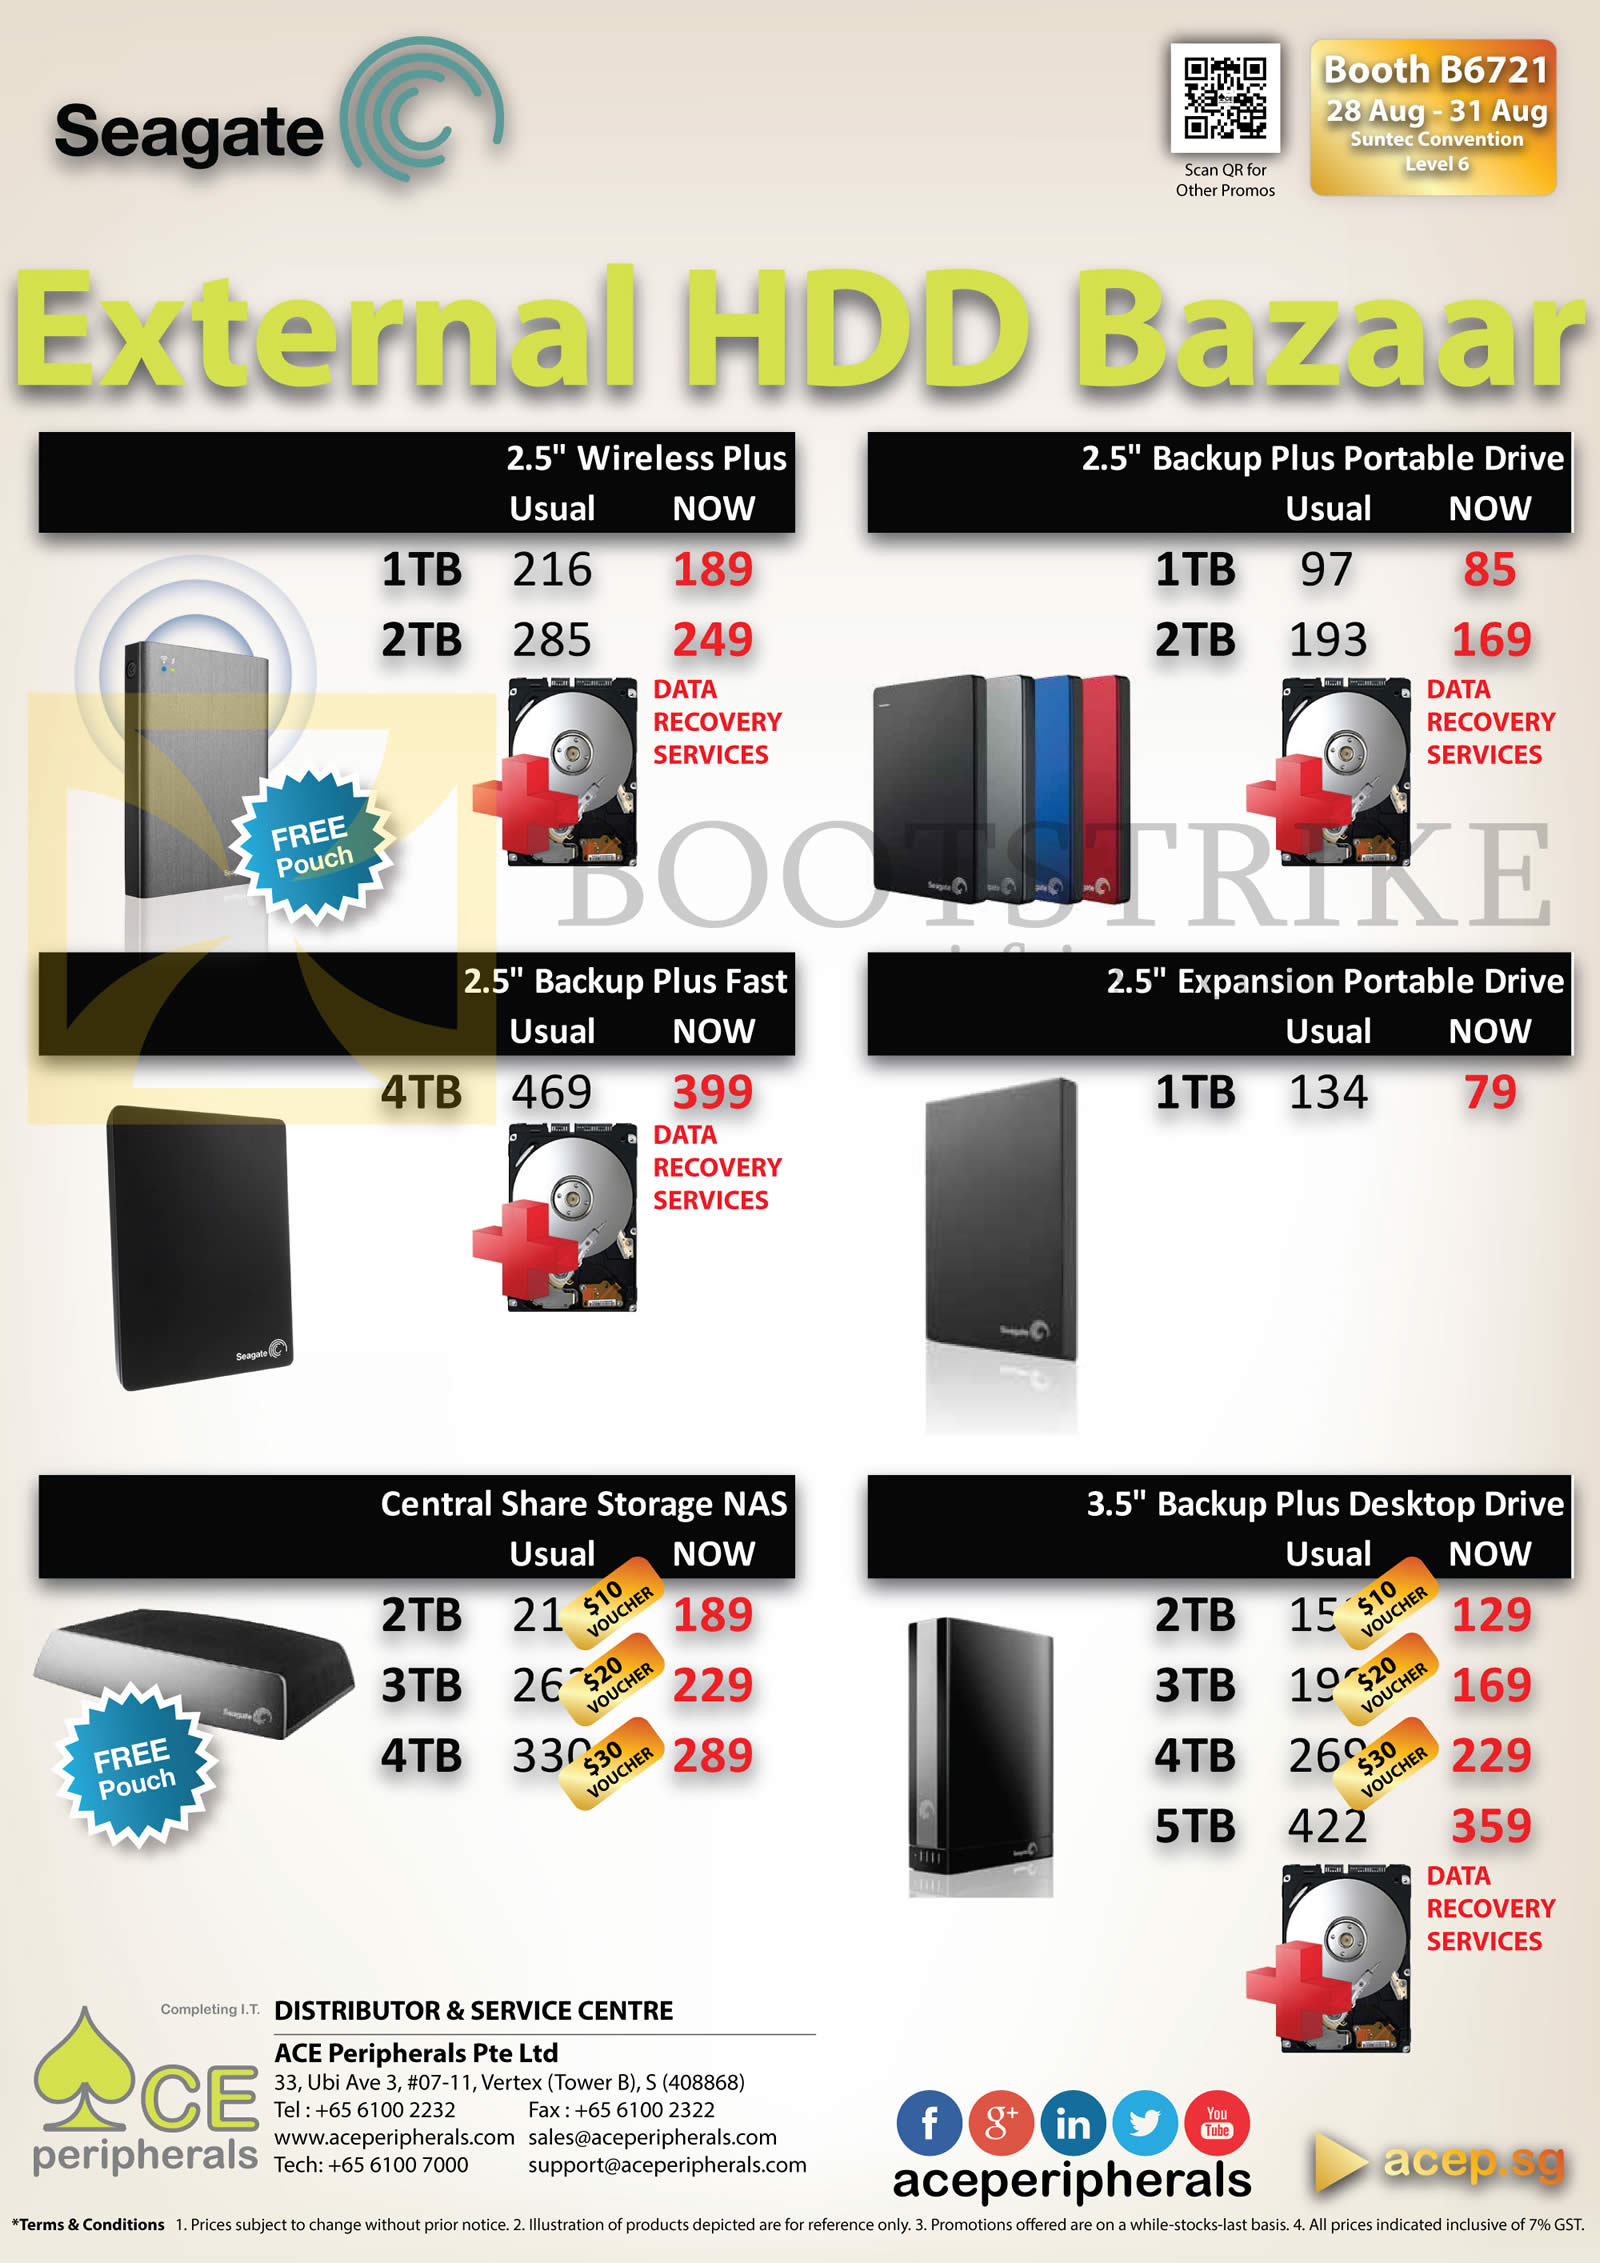 COMEX 2014 price list image brochure of ACE Peripherals Seagate External Storage Backup Plus Fast, Portable Expansion, NAS Central Share Storage 1TB, 2TB, 3TB, 4TB